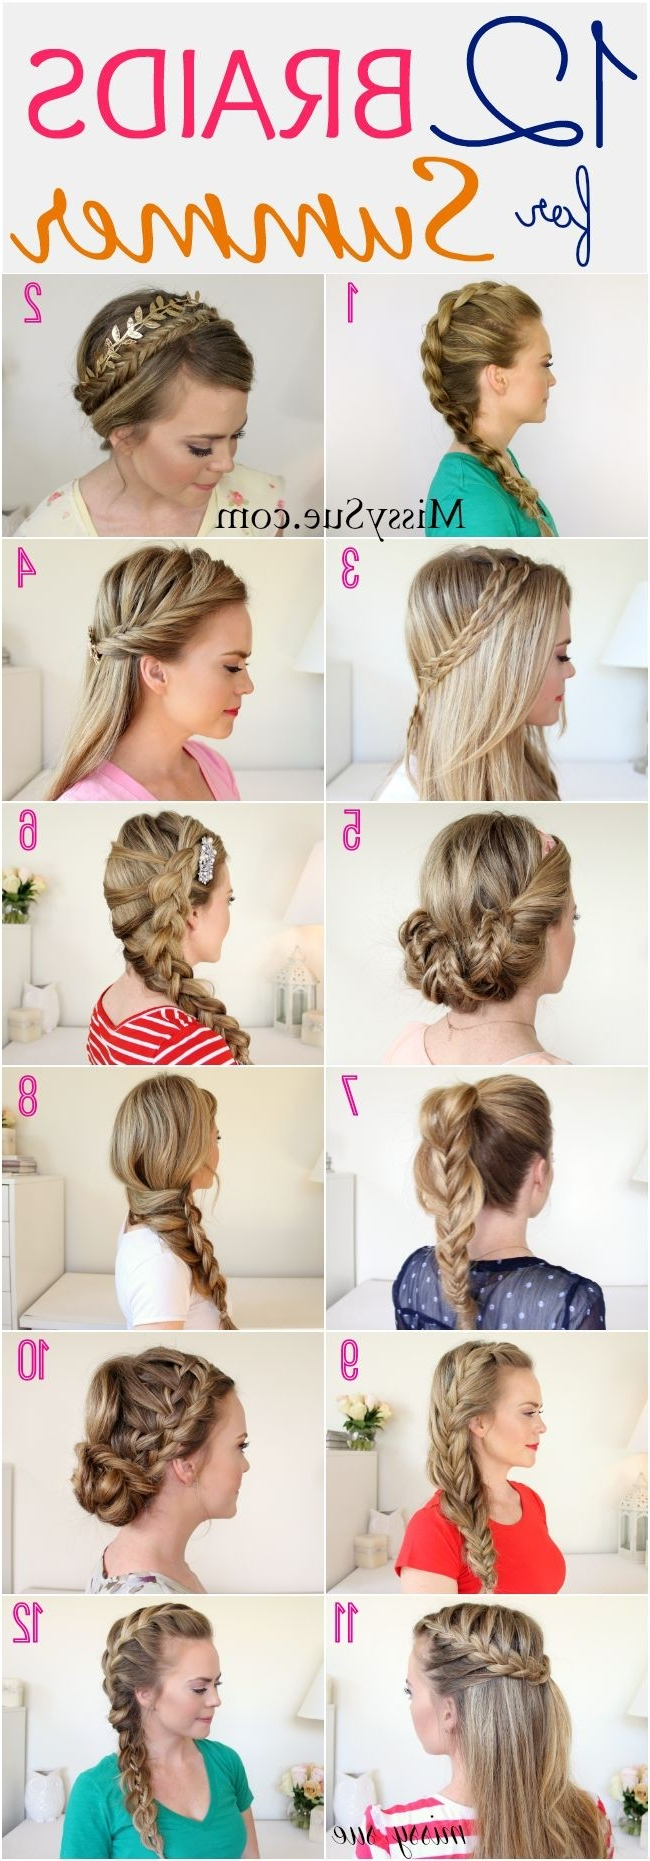 26 Pretty Braided Hairstyle For Summer – Popular Haircuts In Most Current Casual Rope Braid Hairstyles (View 5 of 20)